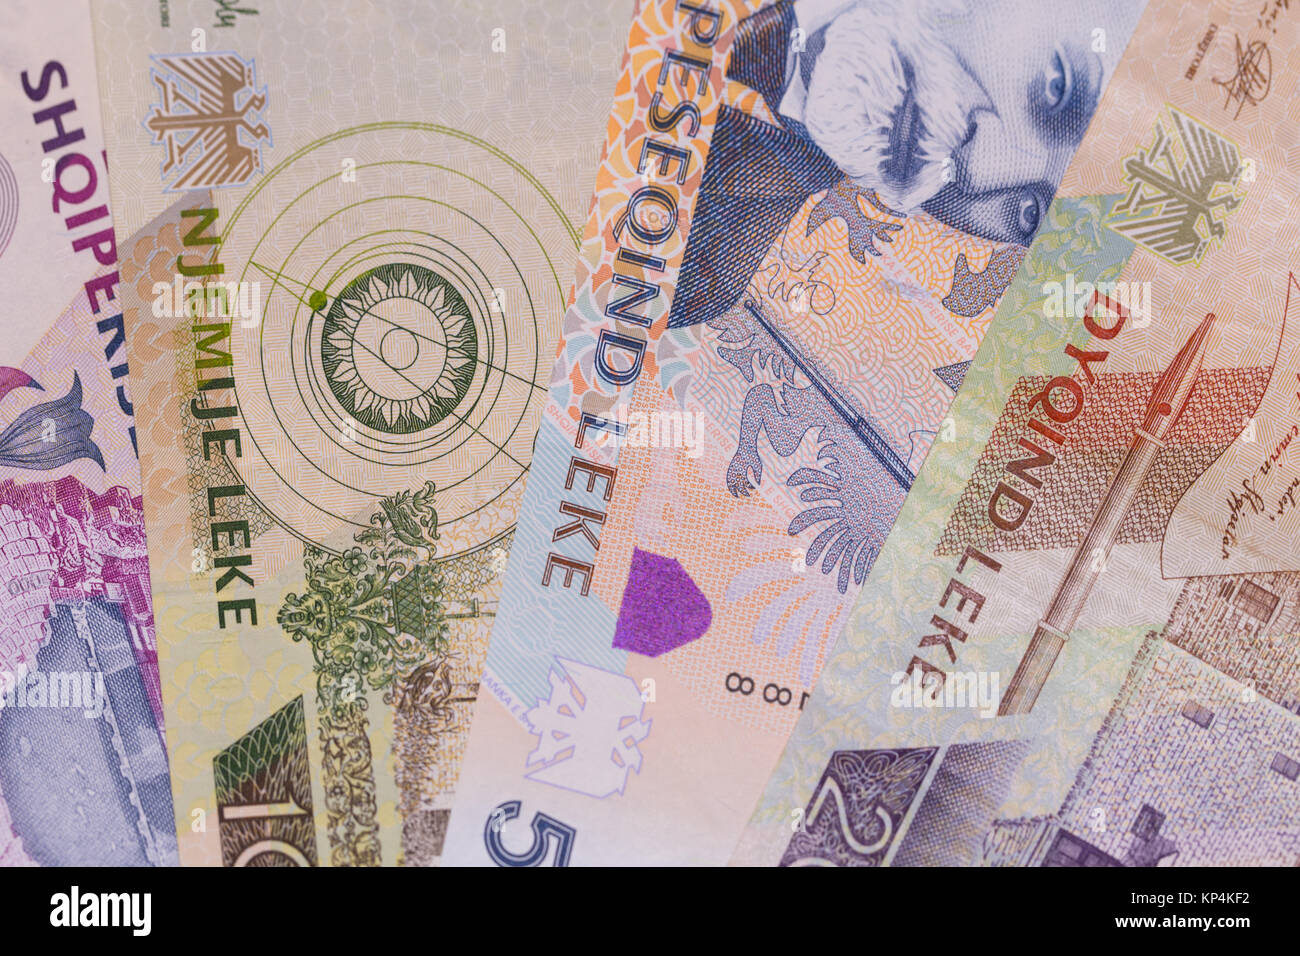 Albanian currency Lek banknotes of 2000, 1000, 500 and 200 denomination, horizontal - Stock Image